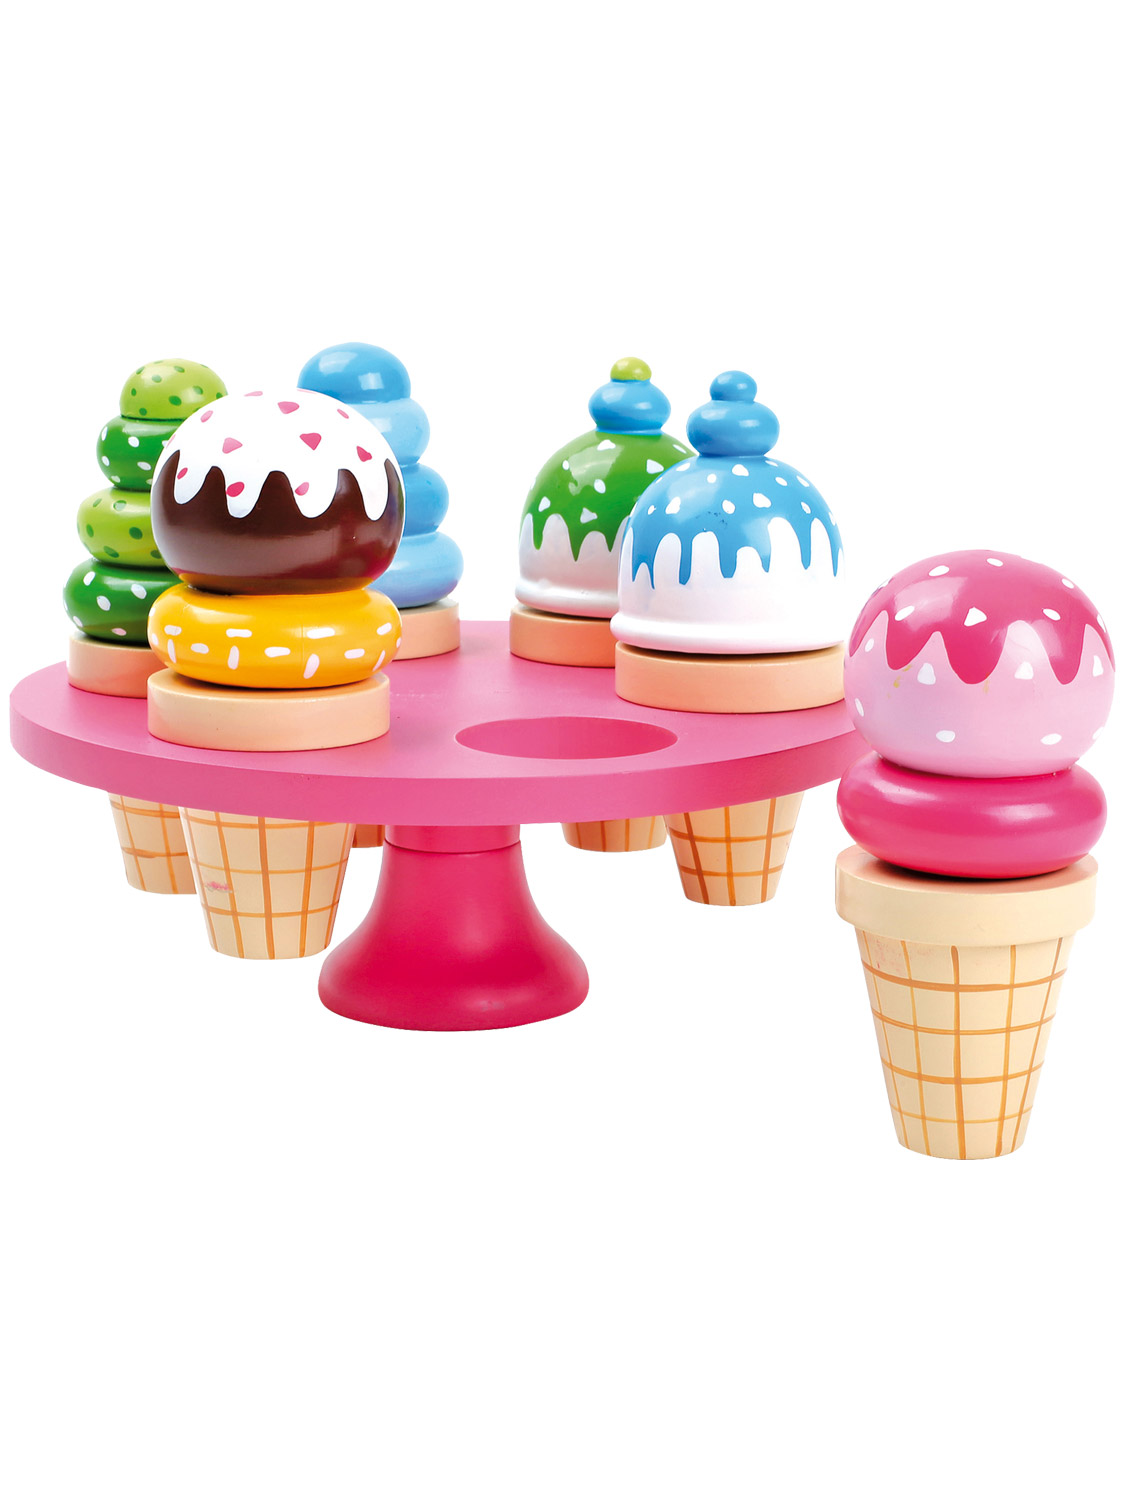 Wooden ice cream toy food role play kitchen teddy bear